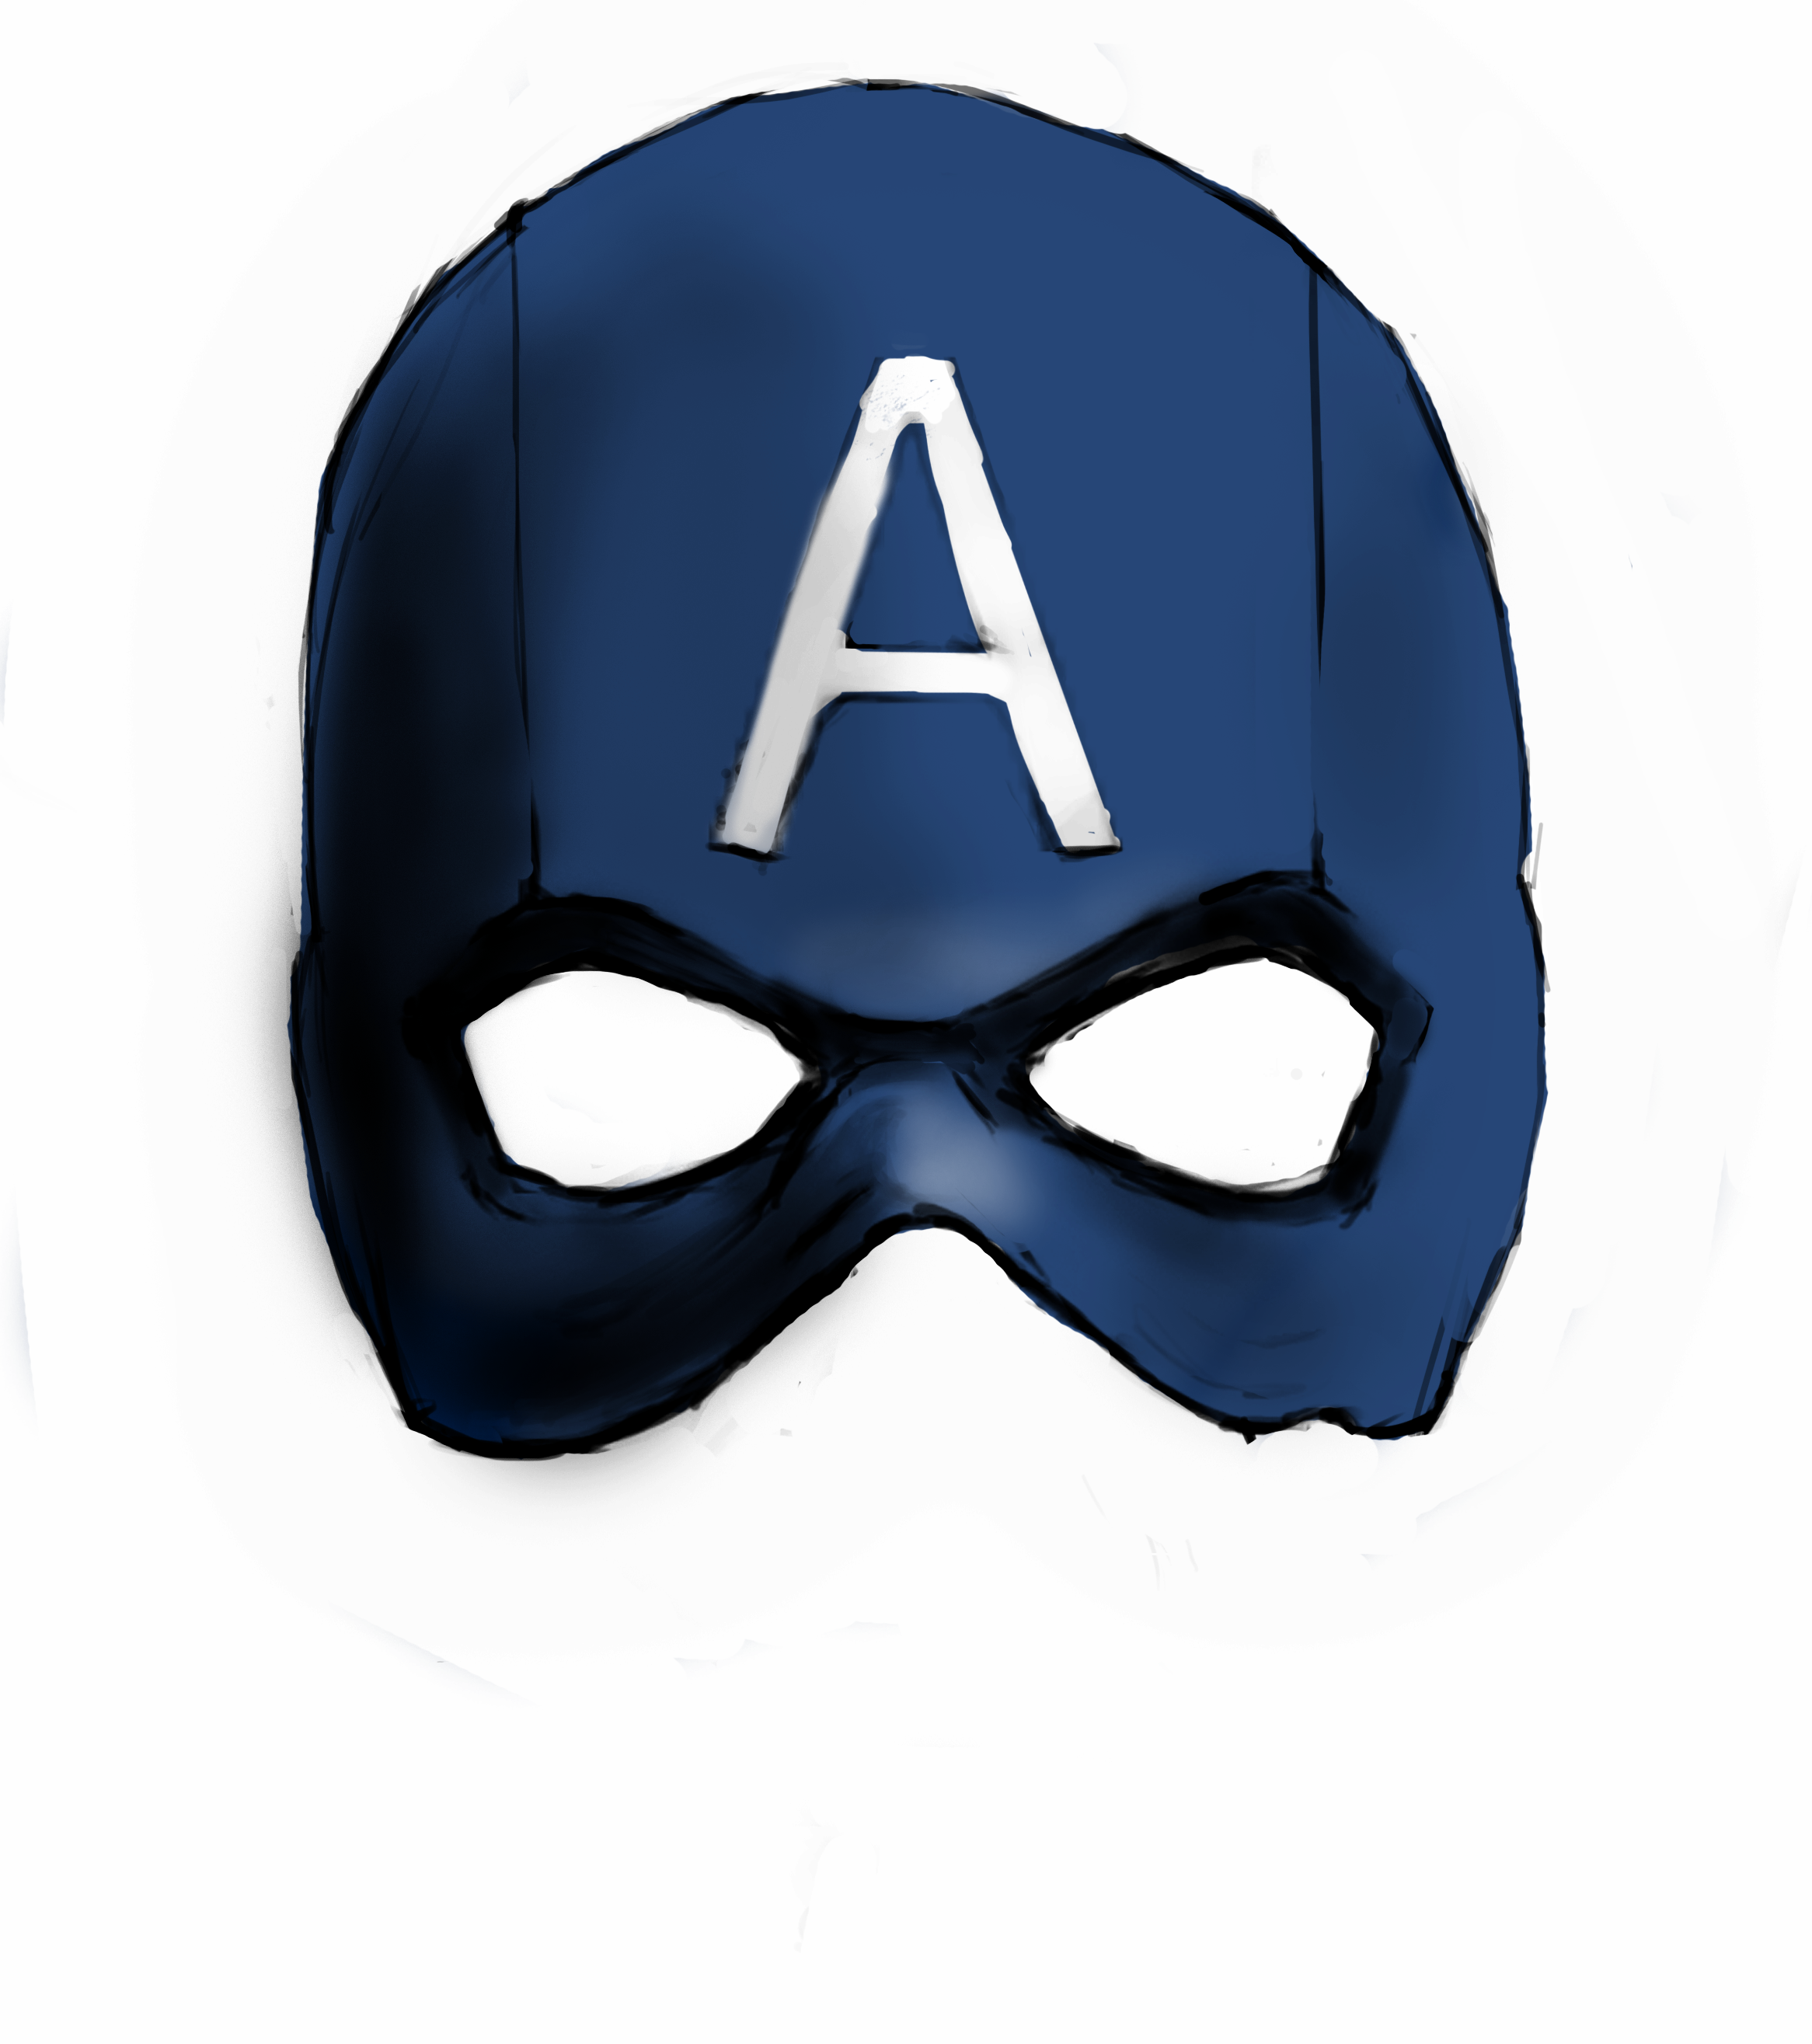 captain america mask by chief501 on deviantart captain america mask by chief501 on